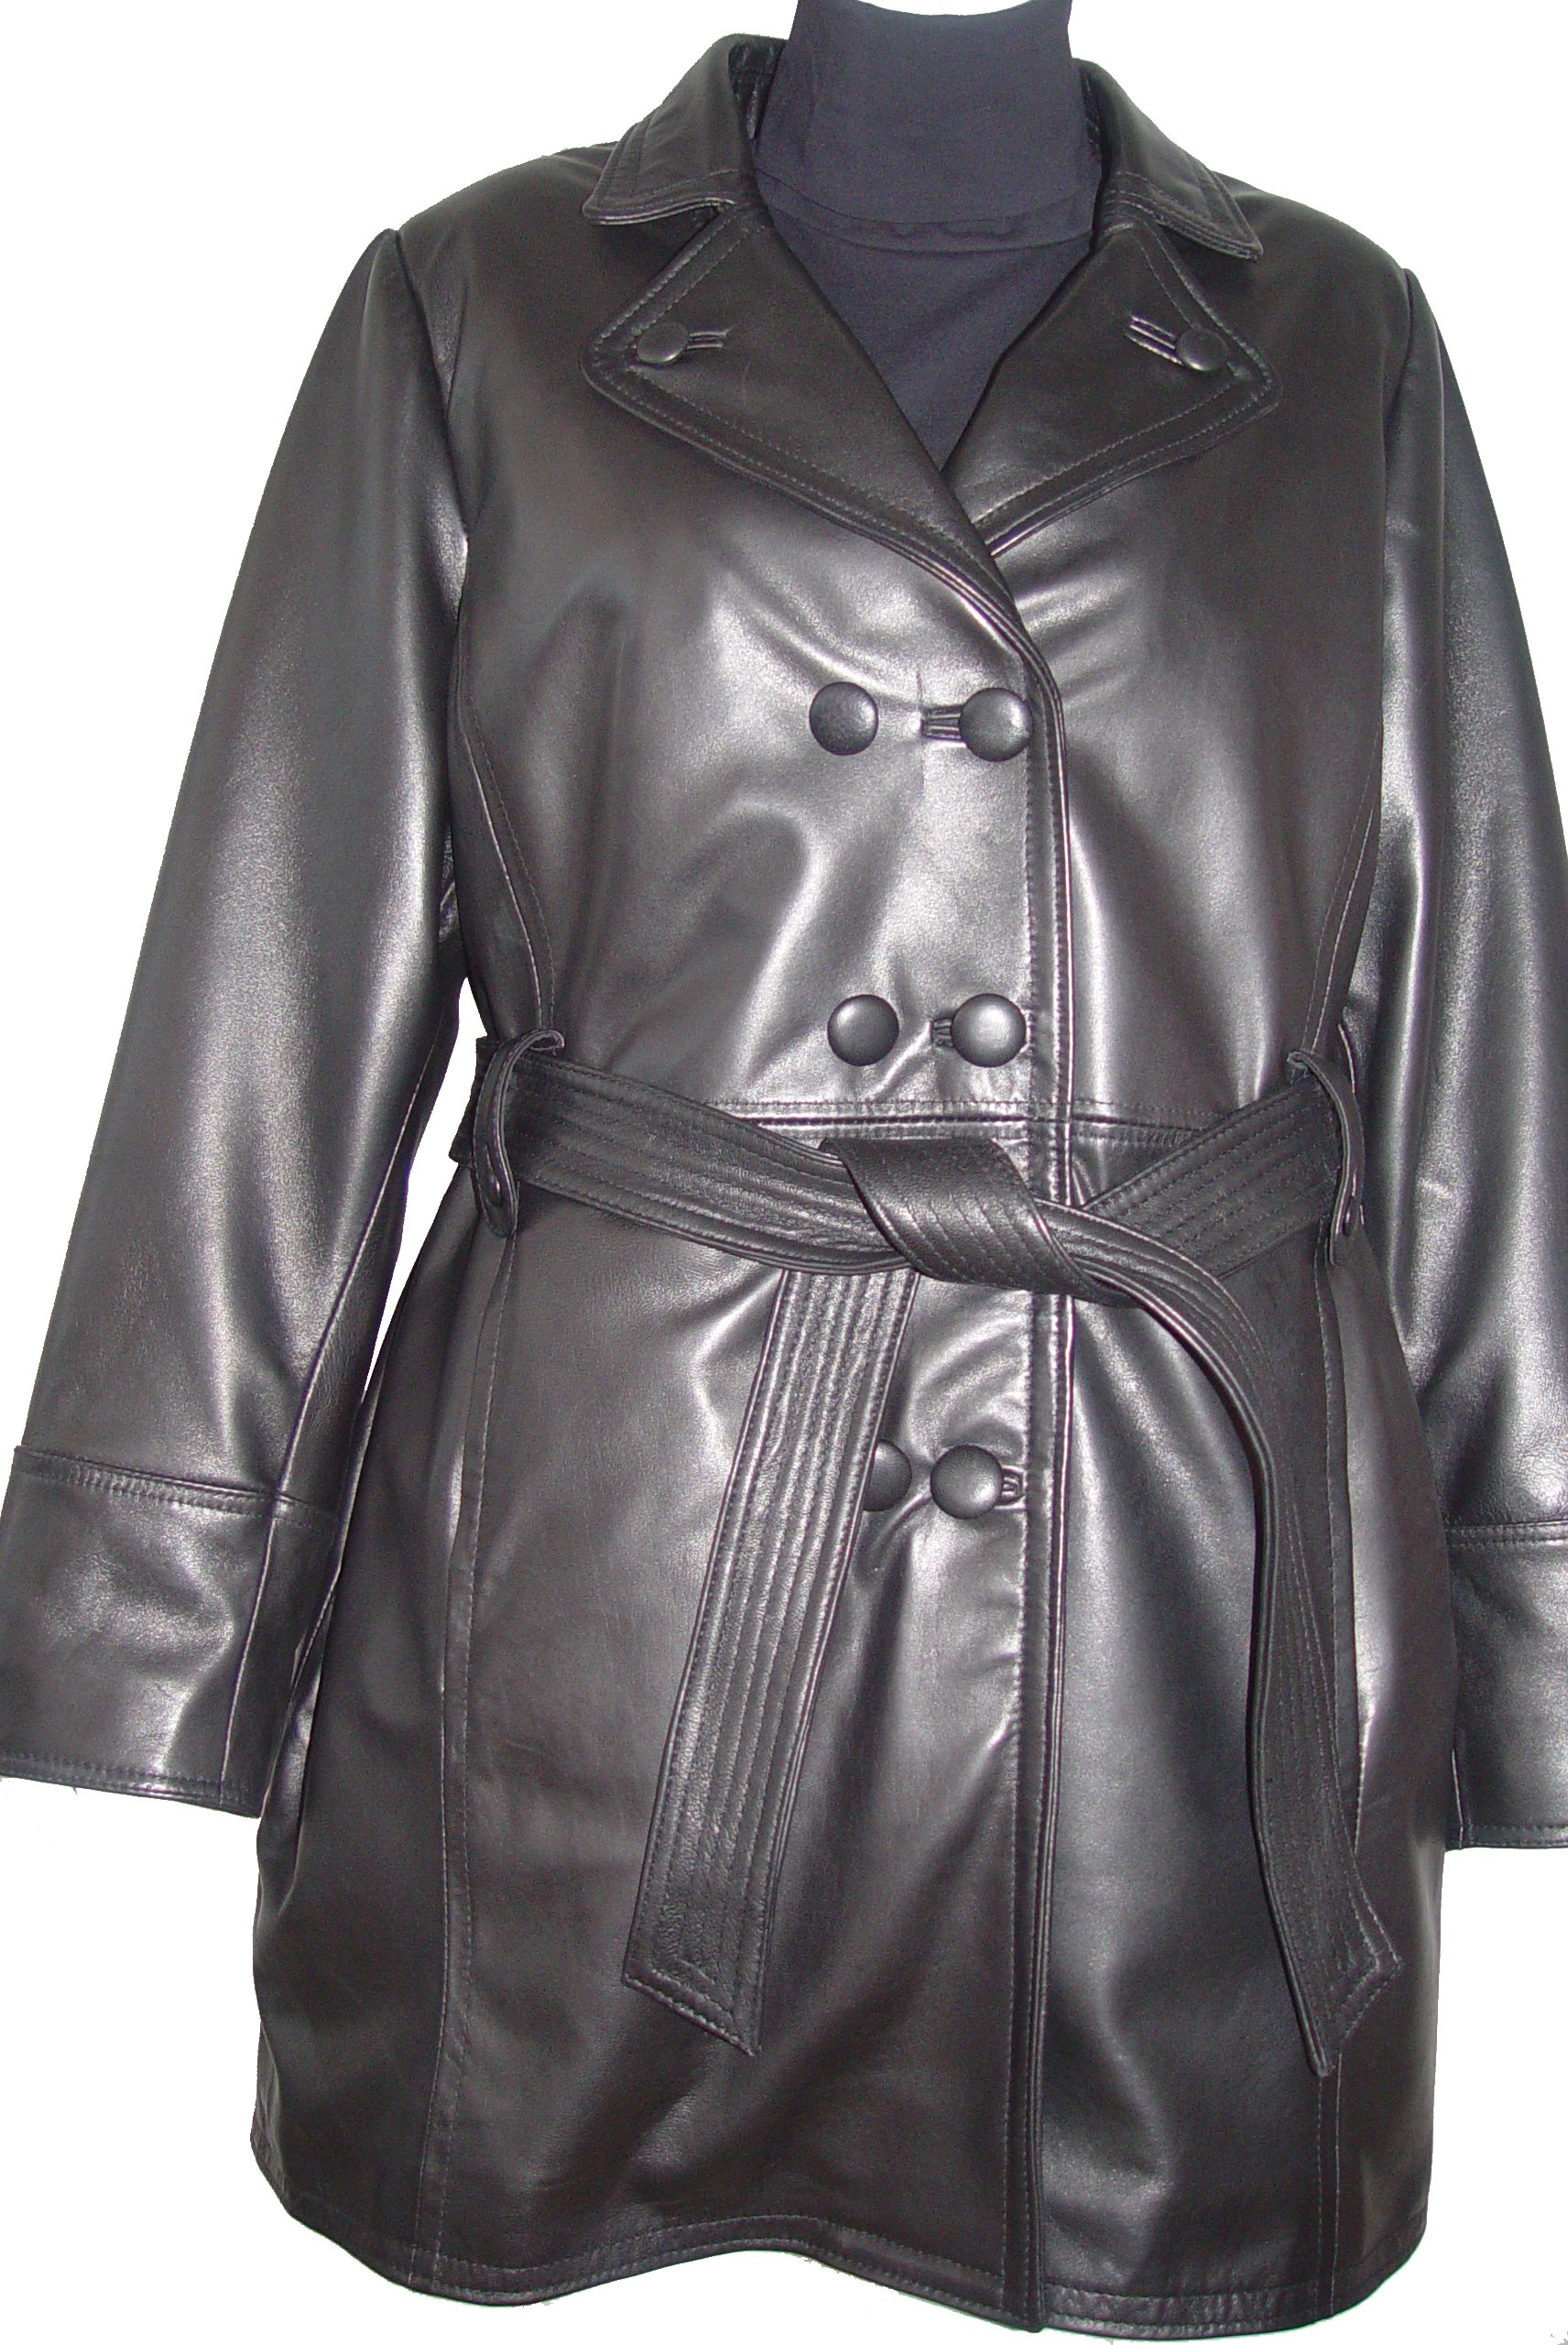 Johnnyblue 4 Season Wear Womens 5006 PETITE & ALL SIZELambskin Leather Trench Coat